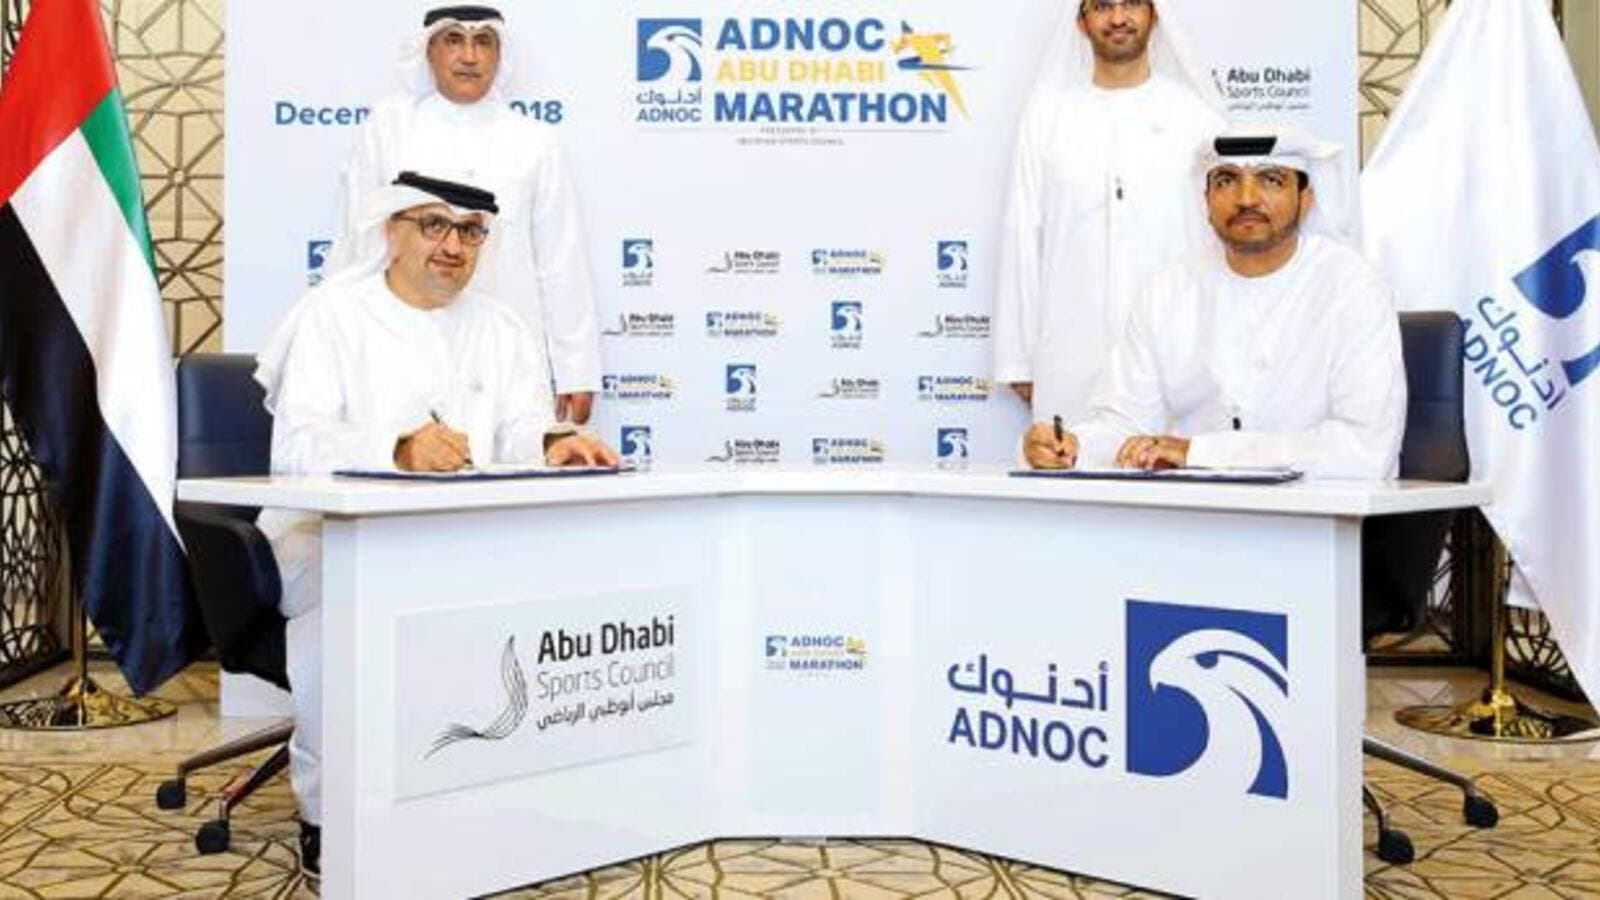 Major General Mohammad Khalfan Al Romaithi, Chairman of General Authority for Sports, Aref Hamad Al Awani, Secretary General of the Abu Dhabi Sports Council, Omar Suwaina Al Suwaidi, Executive Office Director at ADNOC and Sultan Bin Ahmad Al Jaber during the partnership signing ceremony for the ADNOC Abu Dhabi Marathon.